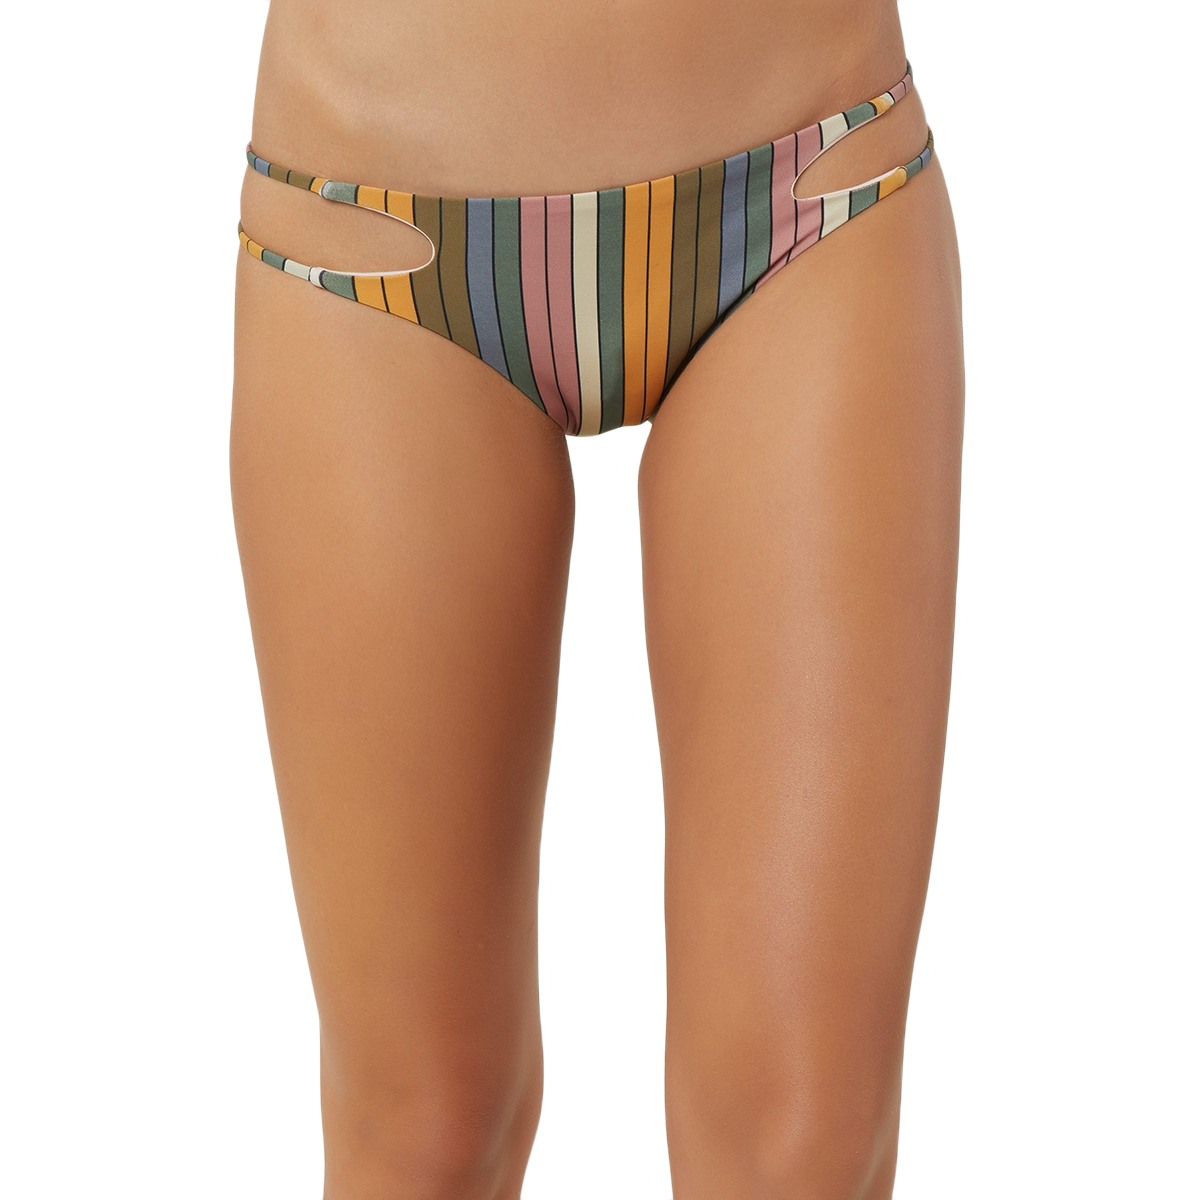 O'neill Juniors' Lora Trip Bikini Bottom - Various Patterns, L